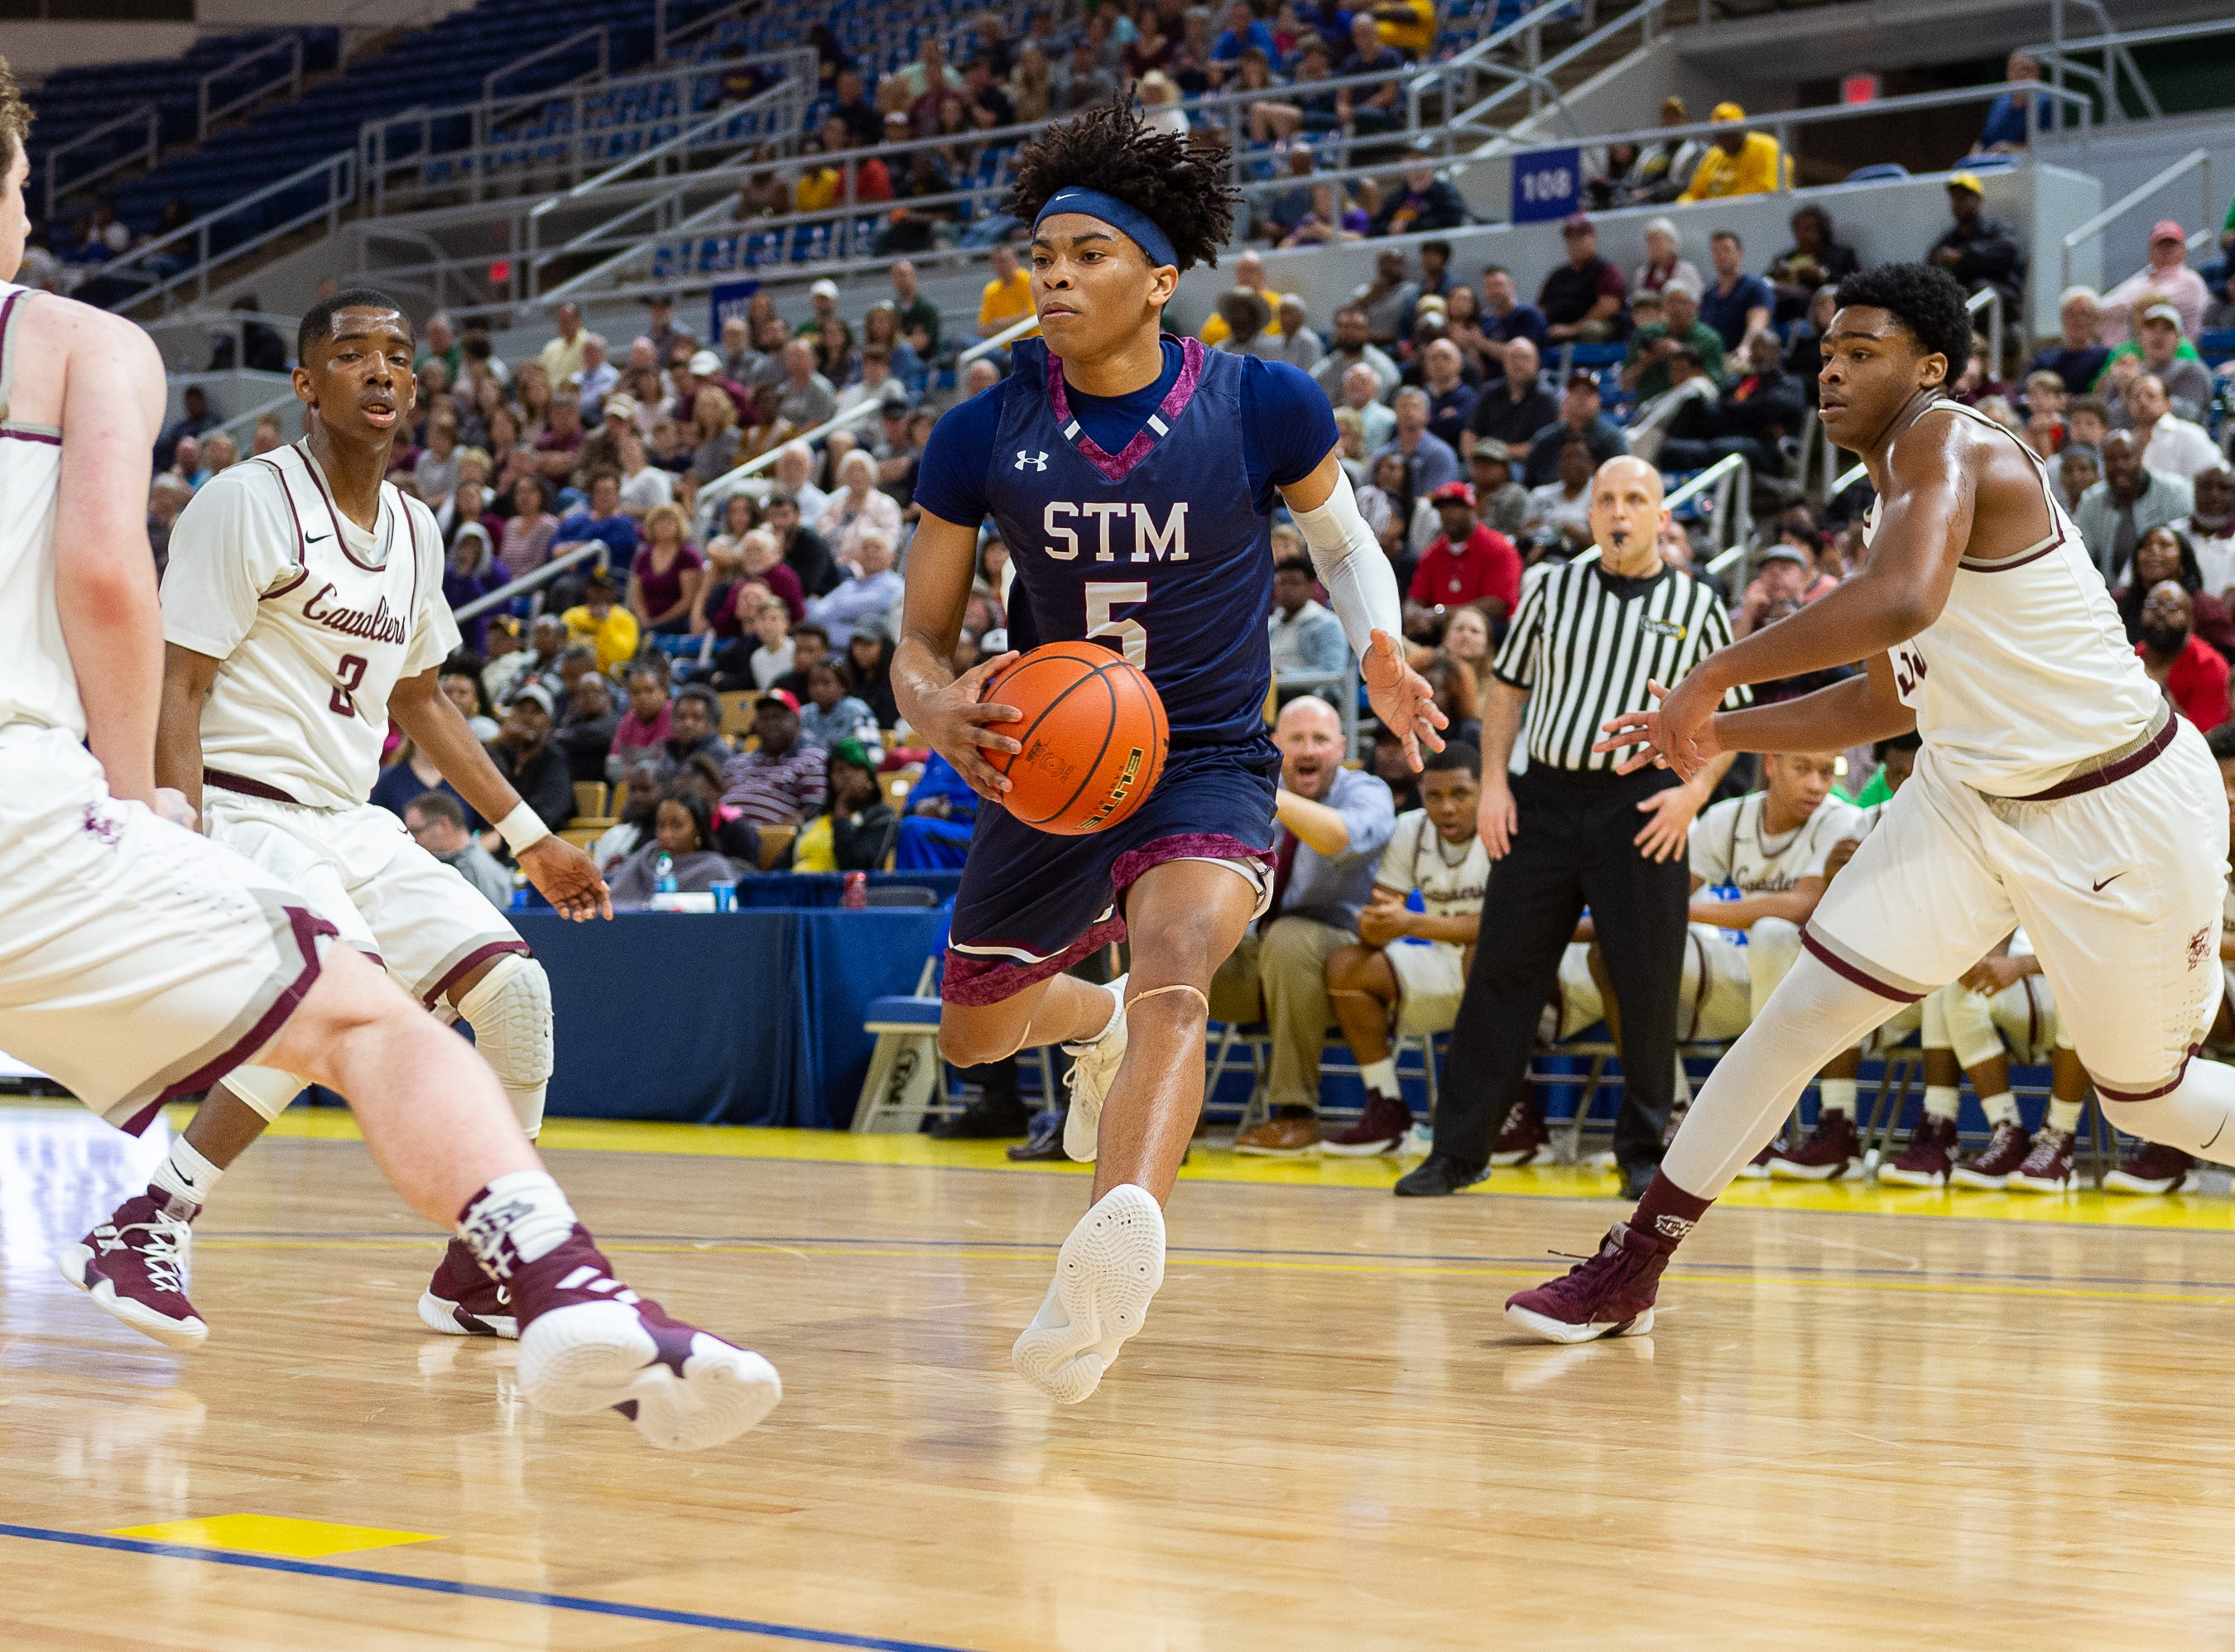 Jaden Shelvin drives to the basket as The STM Cougars beat DeLaSalle in double overtime to win the Allstate Sugar Bowl/LHSAA Boys' Marsh Madness Div II State Championship. Saturday, March 9, 2019.